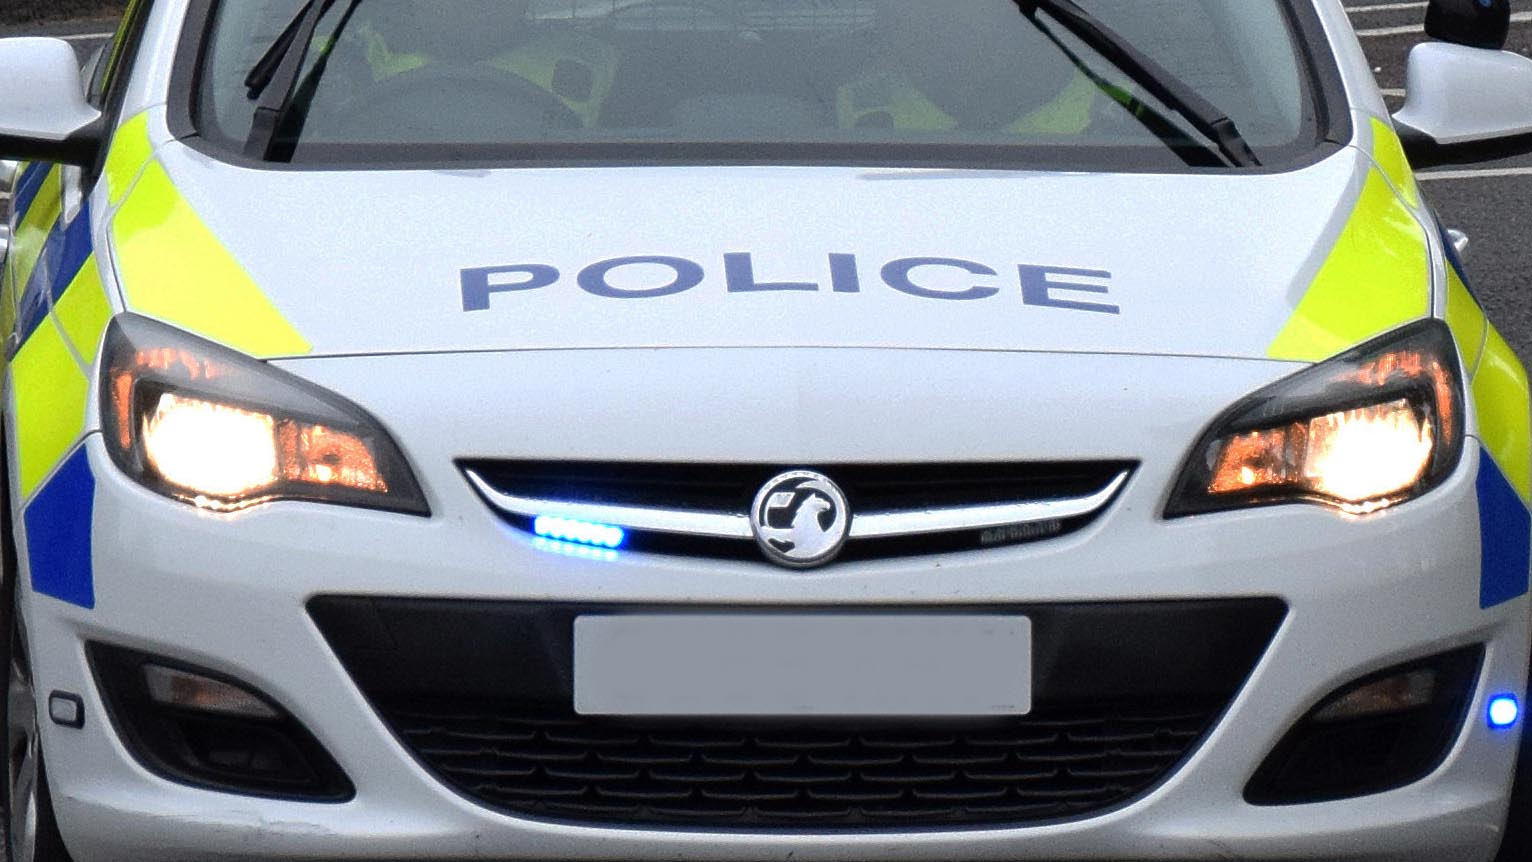 Man Has been Arrested and Charged for committing Multiple Burglaries across Hertfordshire